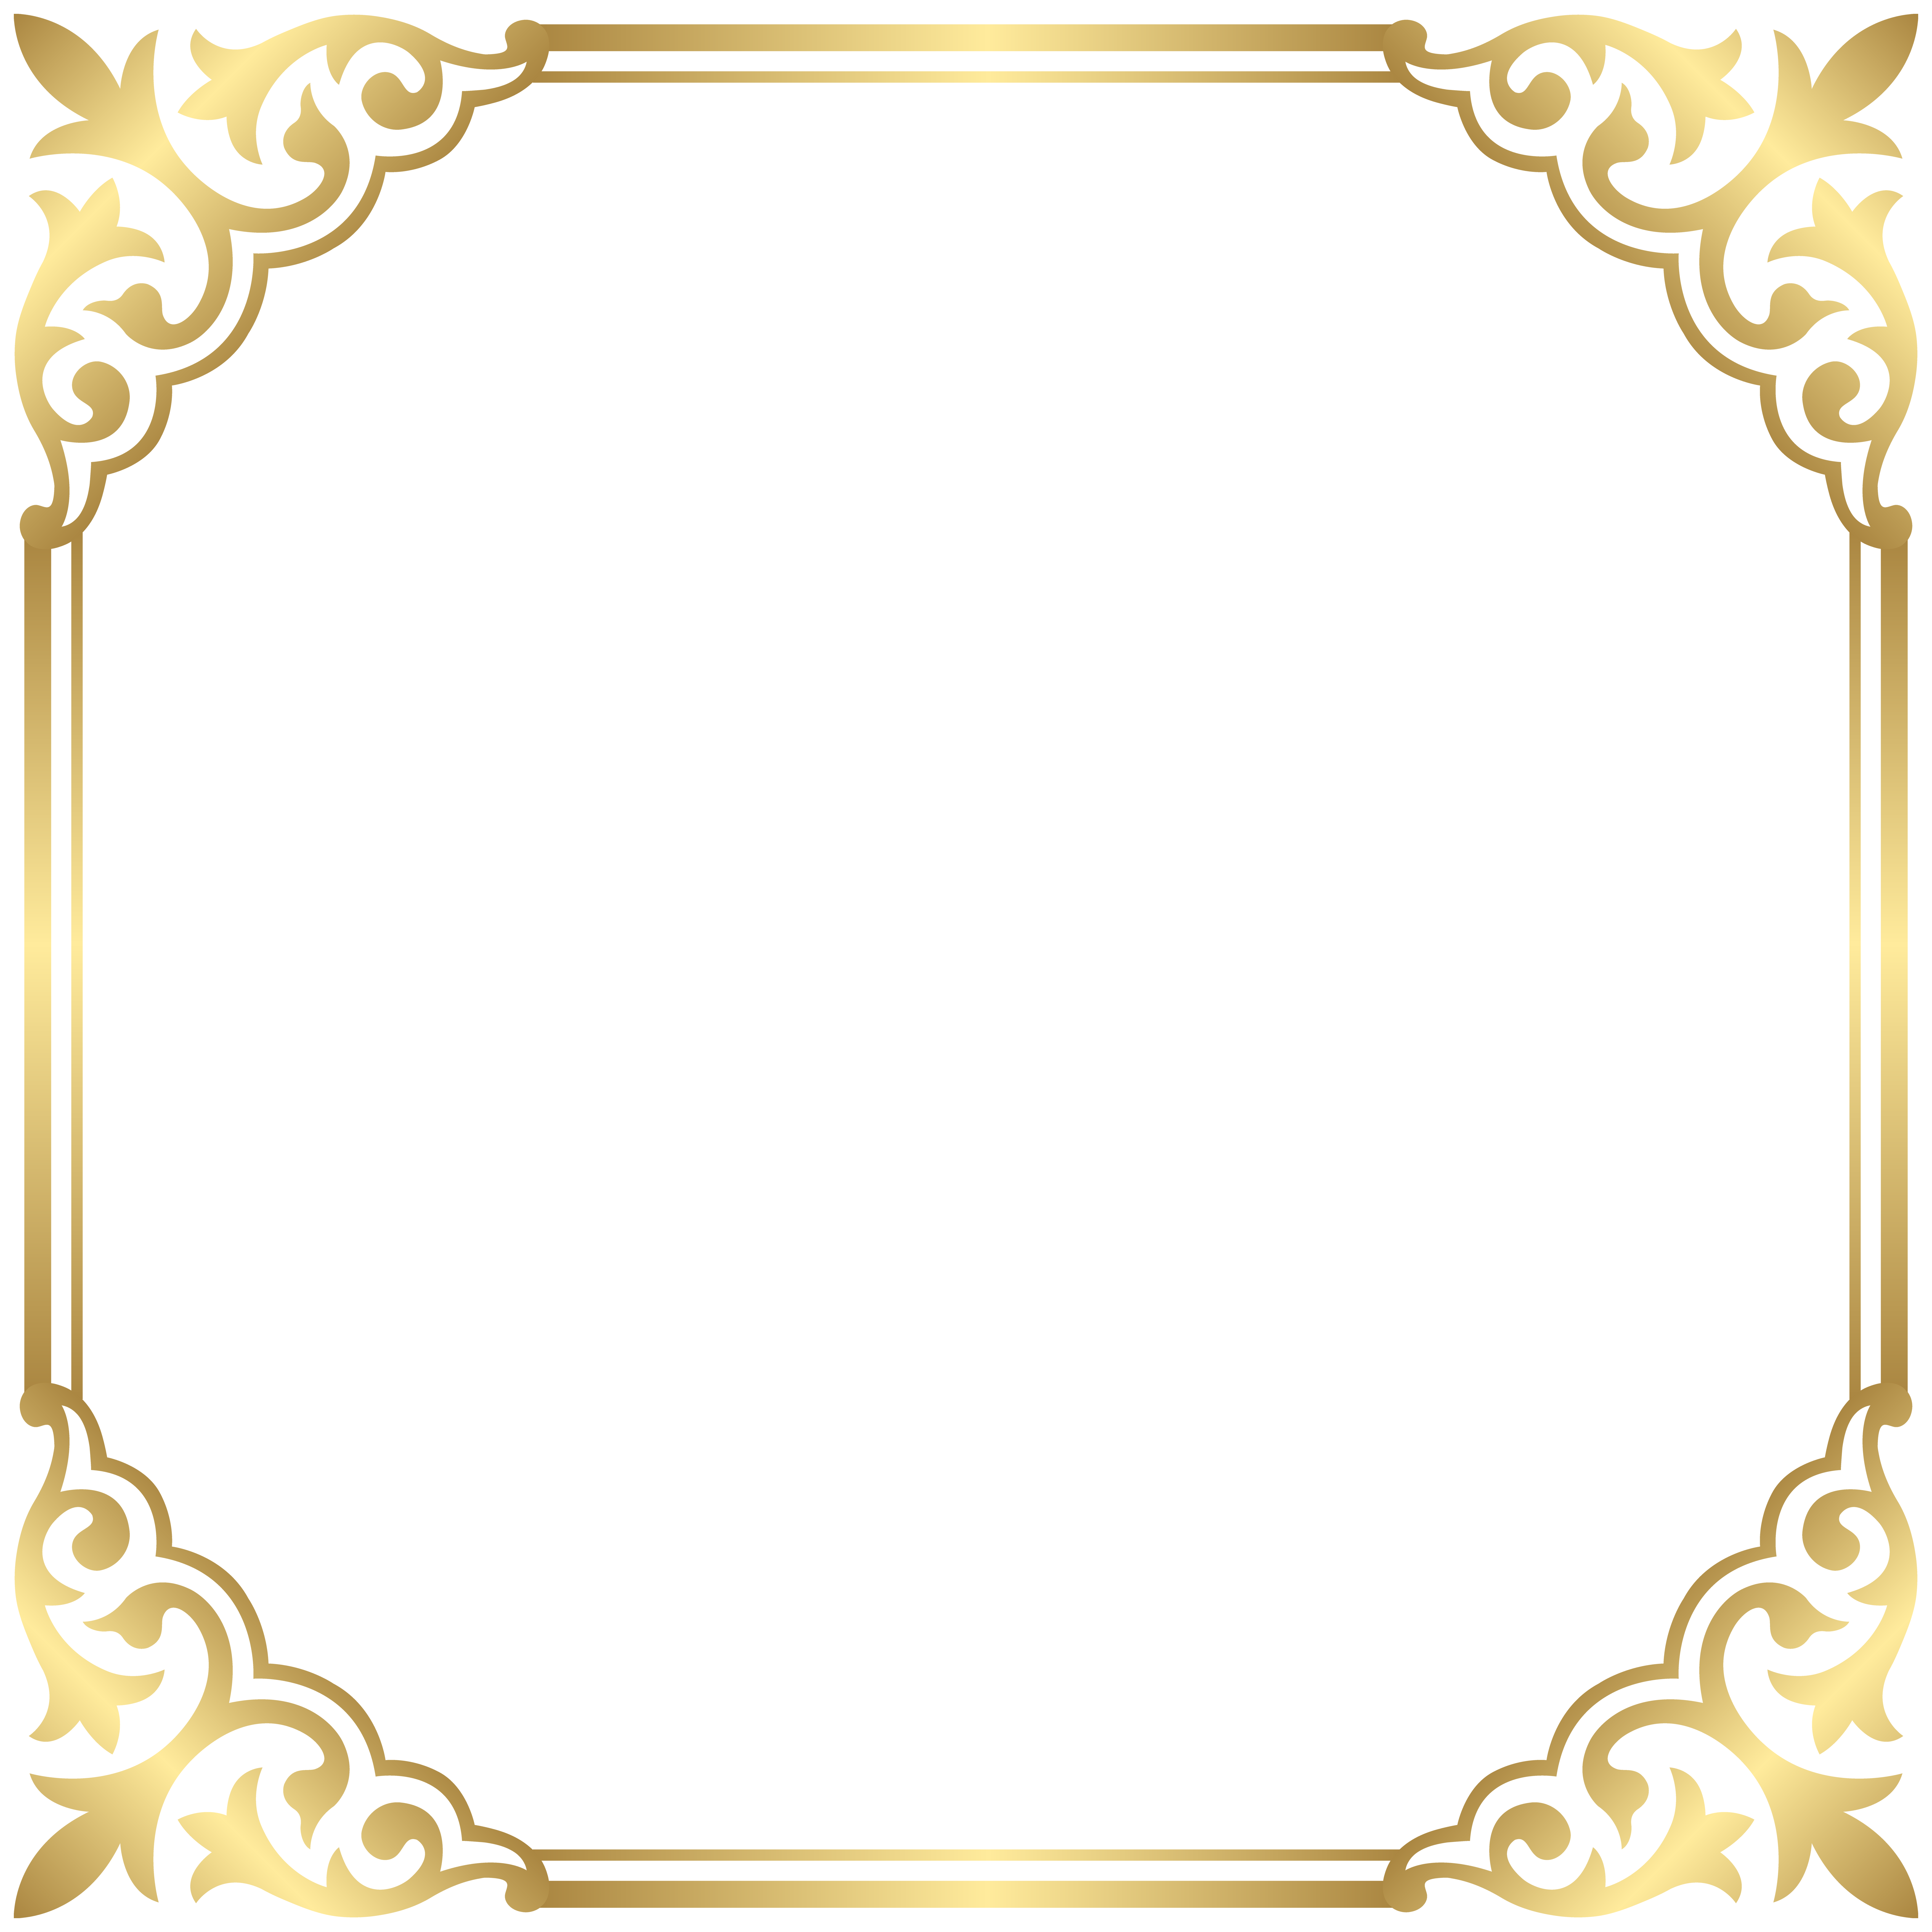 Victorian border frame png. Gold clipart lovely clip